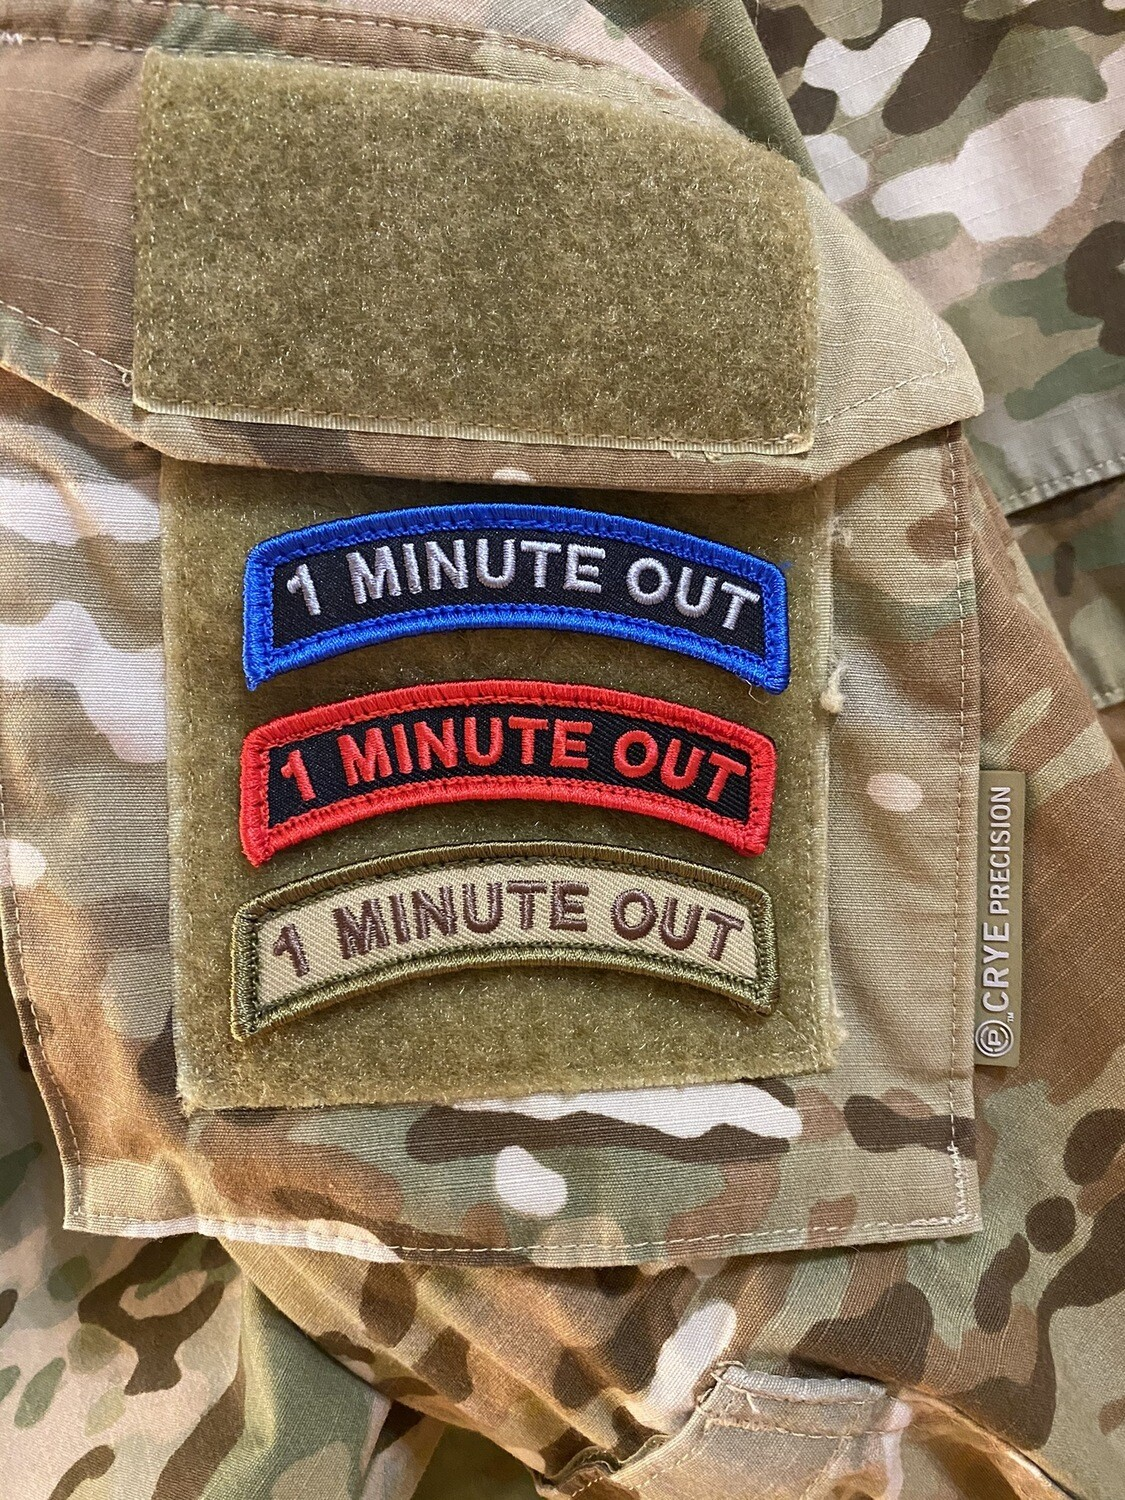 1 Minute Out Tab